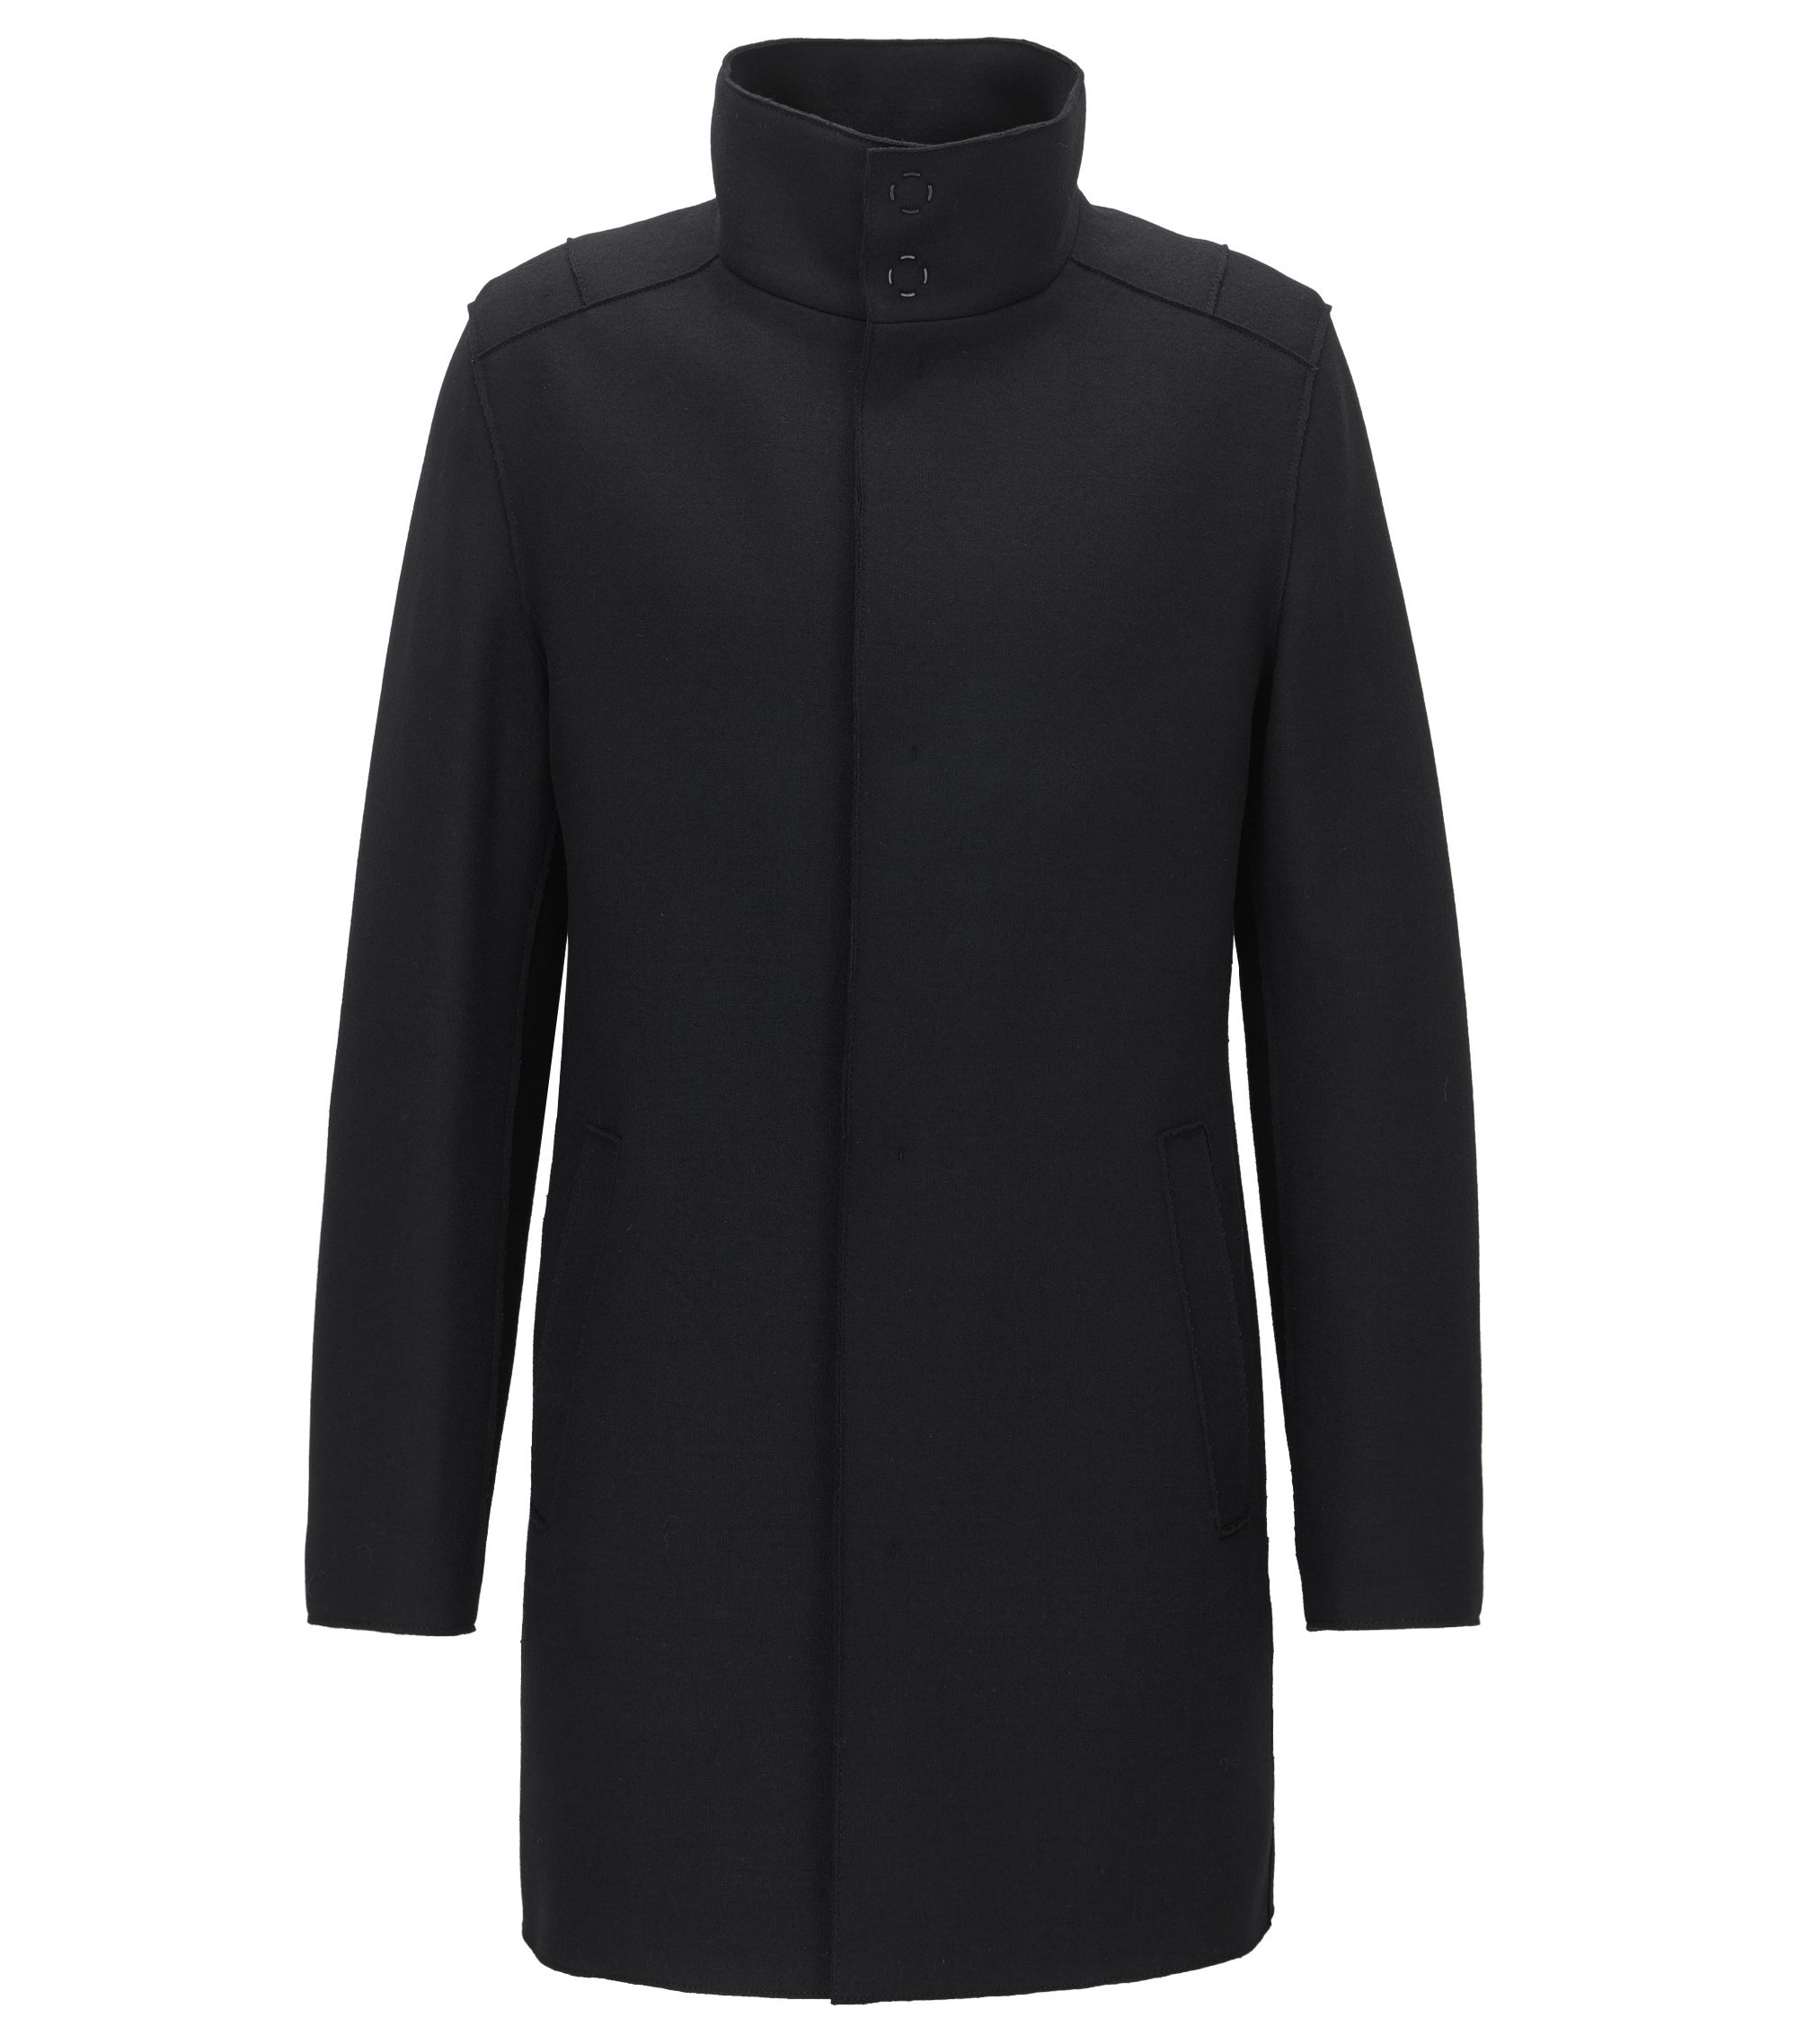 Virgin Wool Cashmere Blend Coat | Minlo, Black